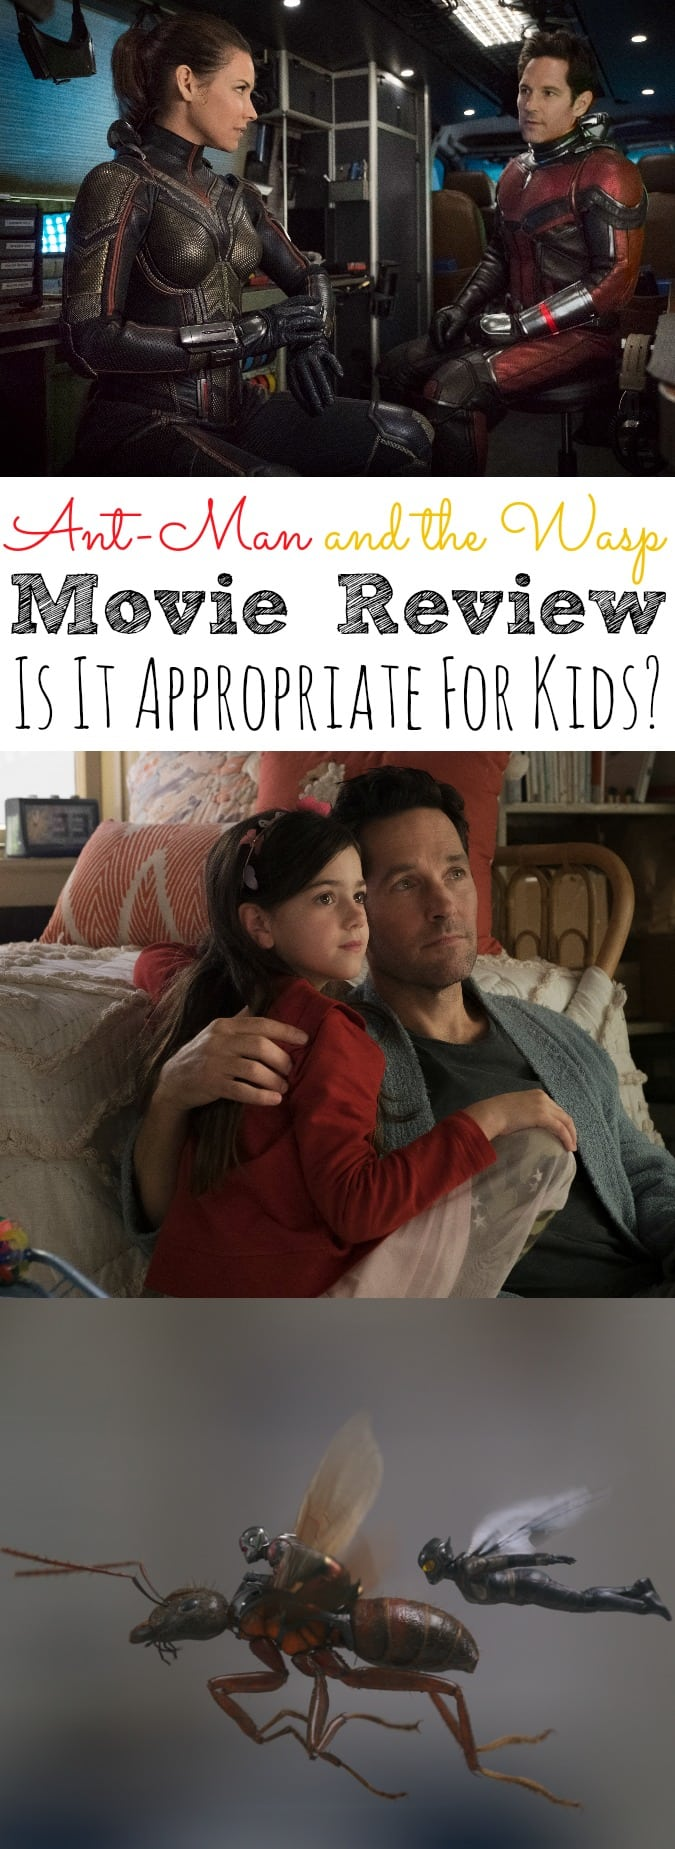 Antman and the Wasp Movie Review